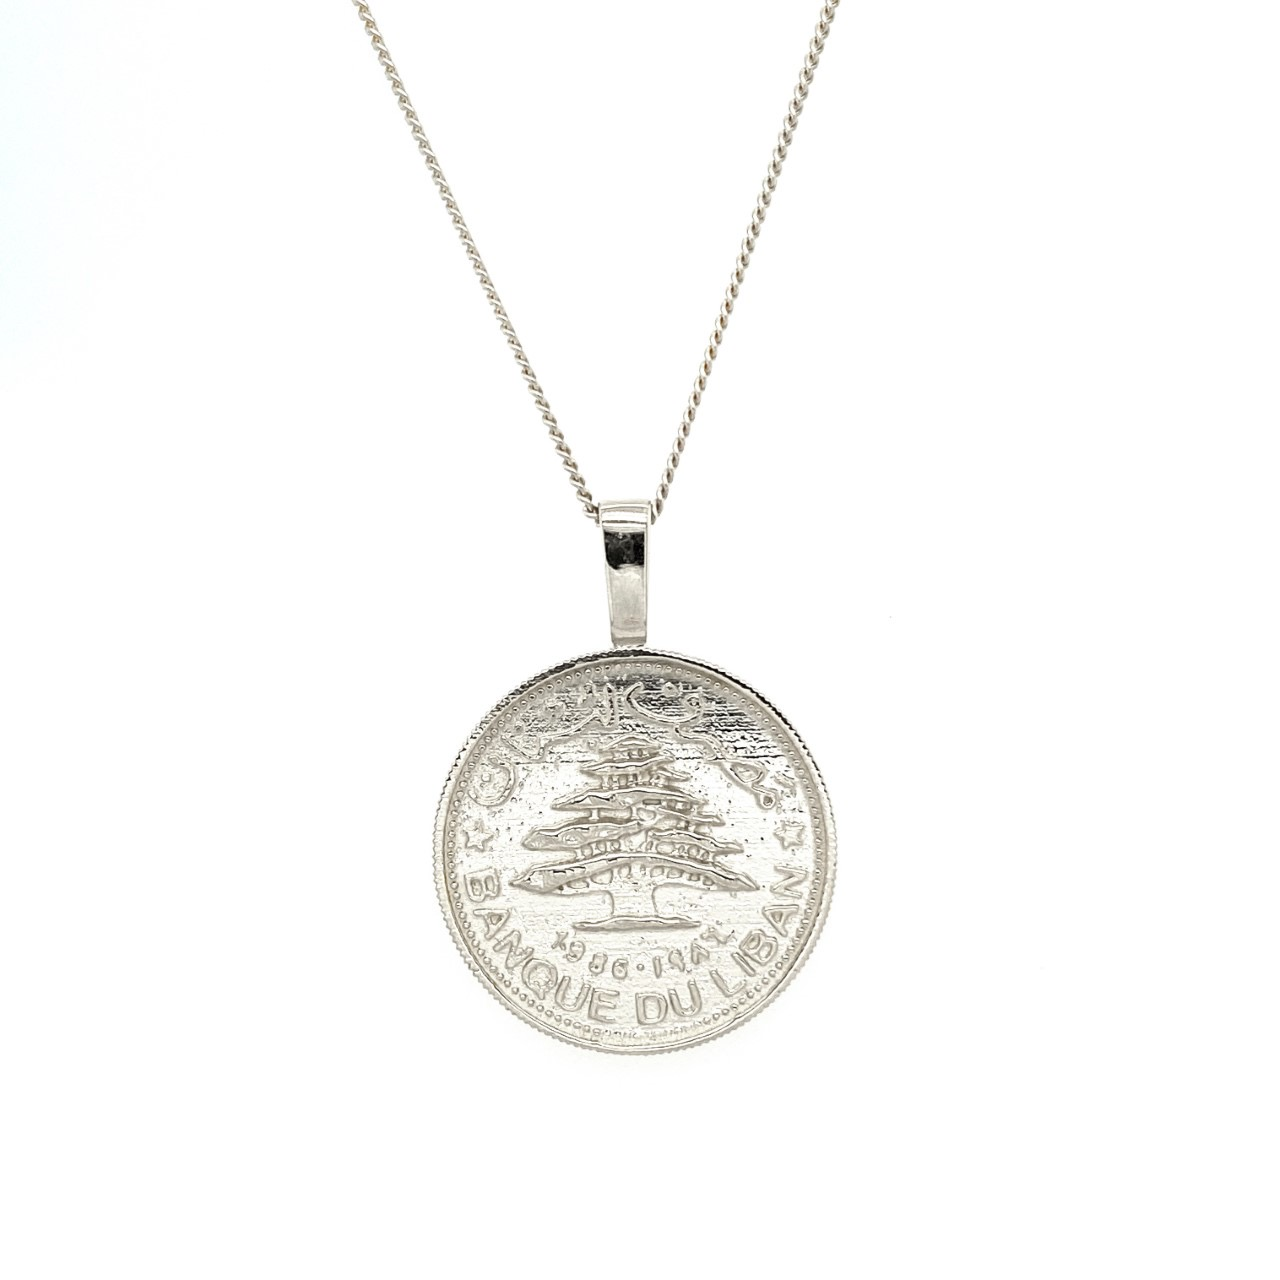 Auction For Silver Lebanese Lira on Silver Chain 2nd